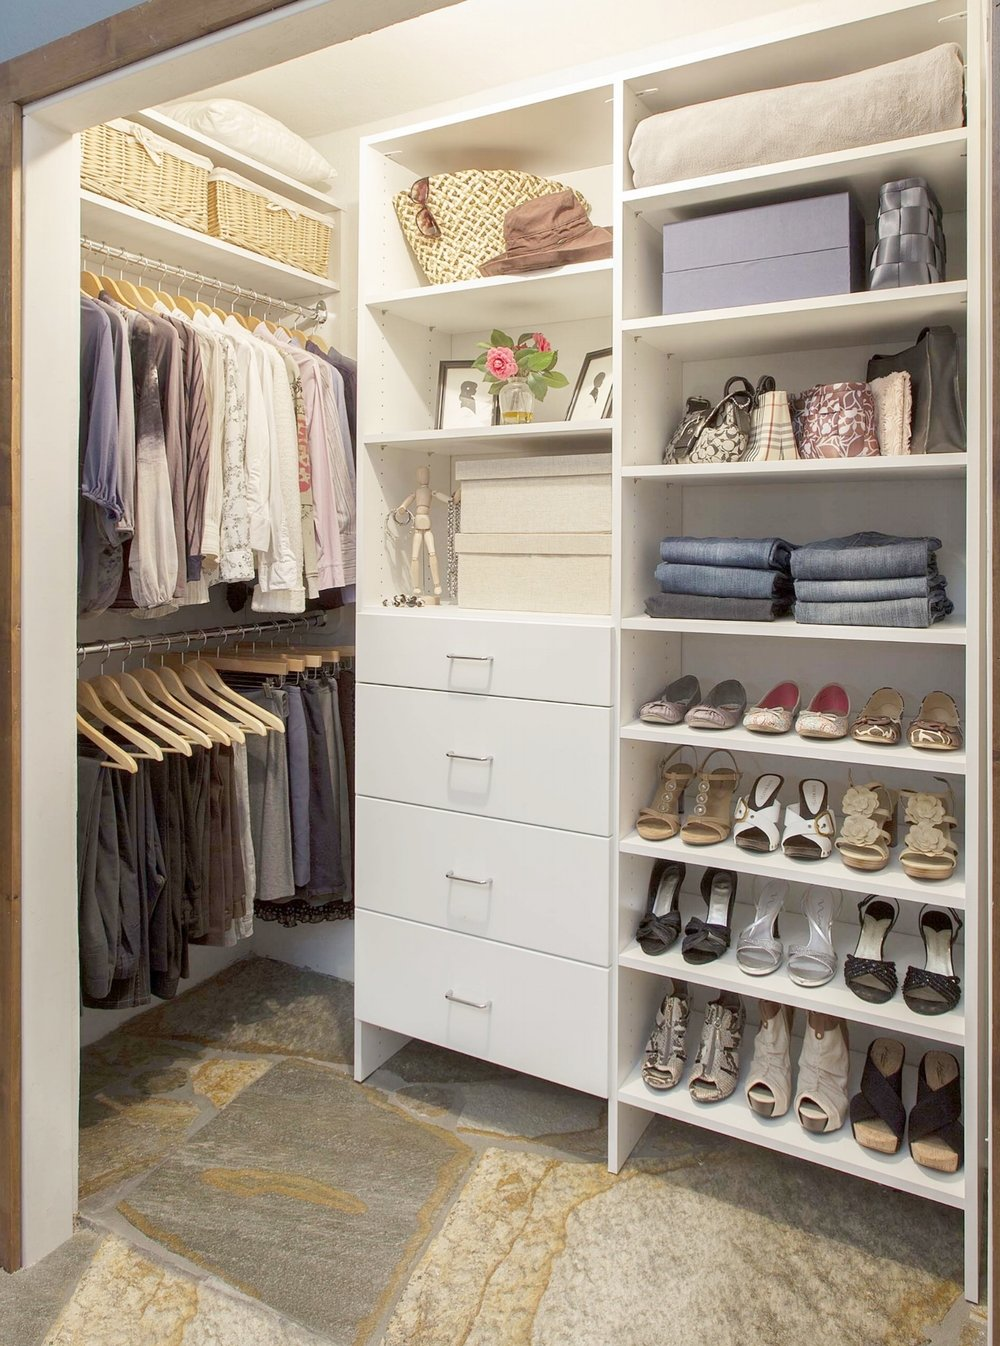 In small spaces with less flexibility, store off-season clothes in storage boxes and baskets on your closet shelves.